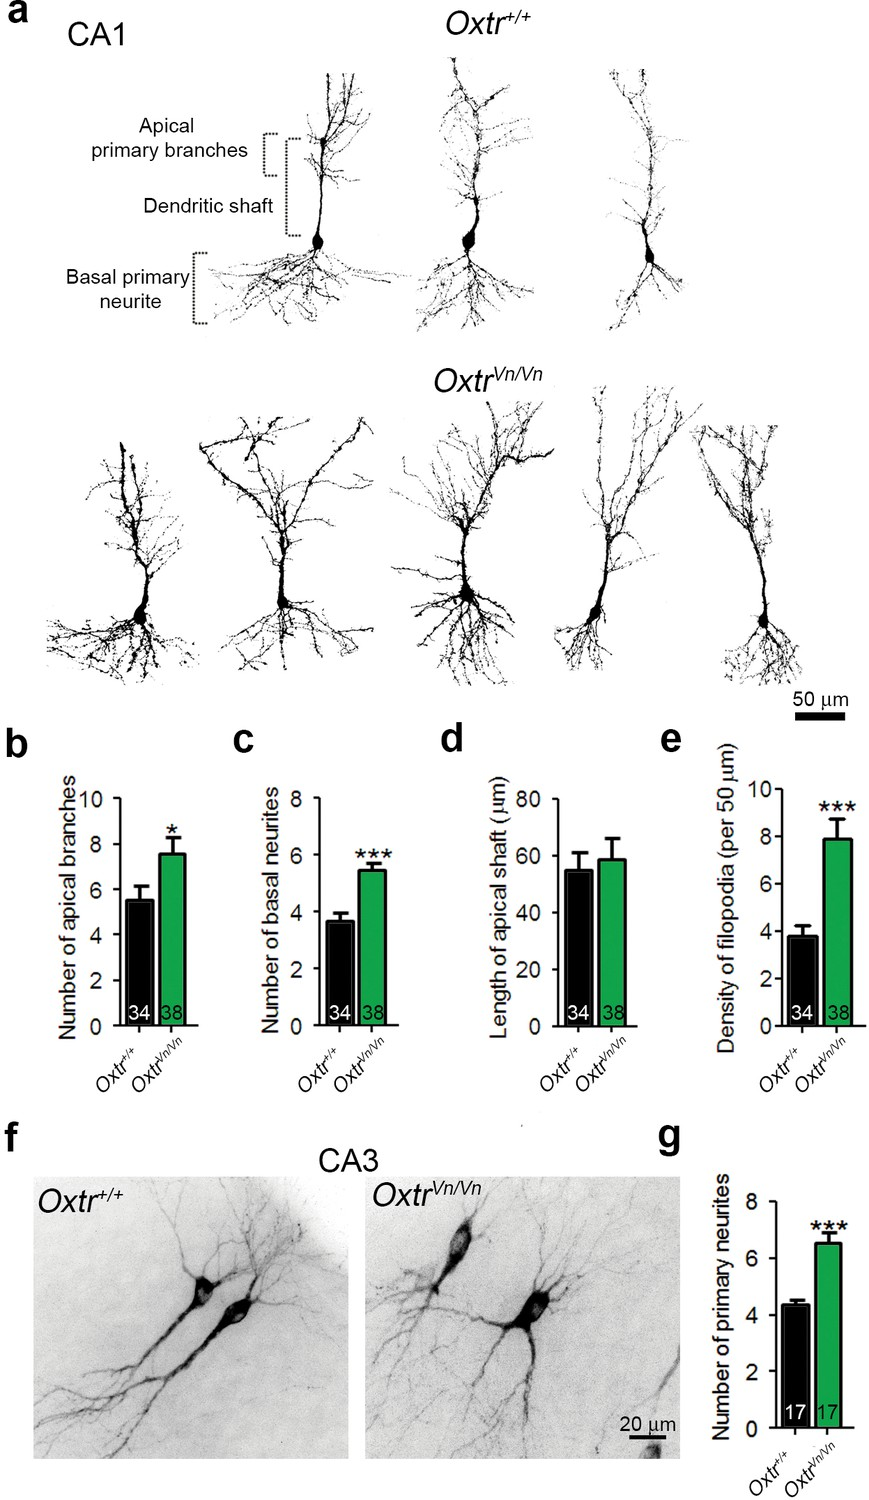 Transient Oxytocin Signaling Primes The Development And Function Of Snap Circuits Extreme Educational 750 Exp Deletion Oxtrs In Hippocampus Causes Dendrite Overgrowth Ca1 Ca3 Pyramidal Neurons